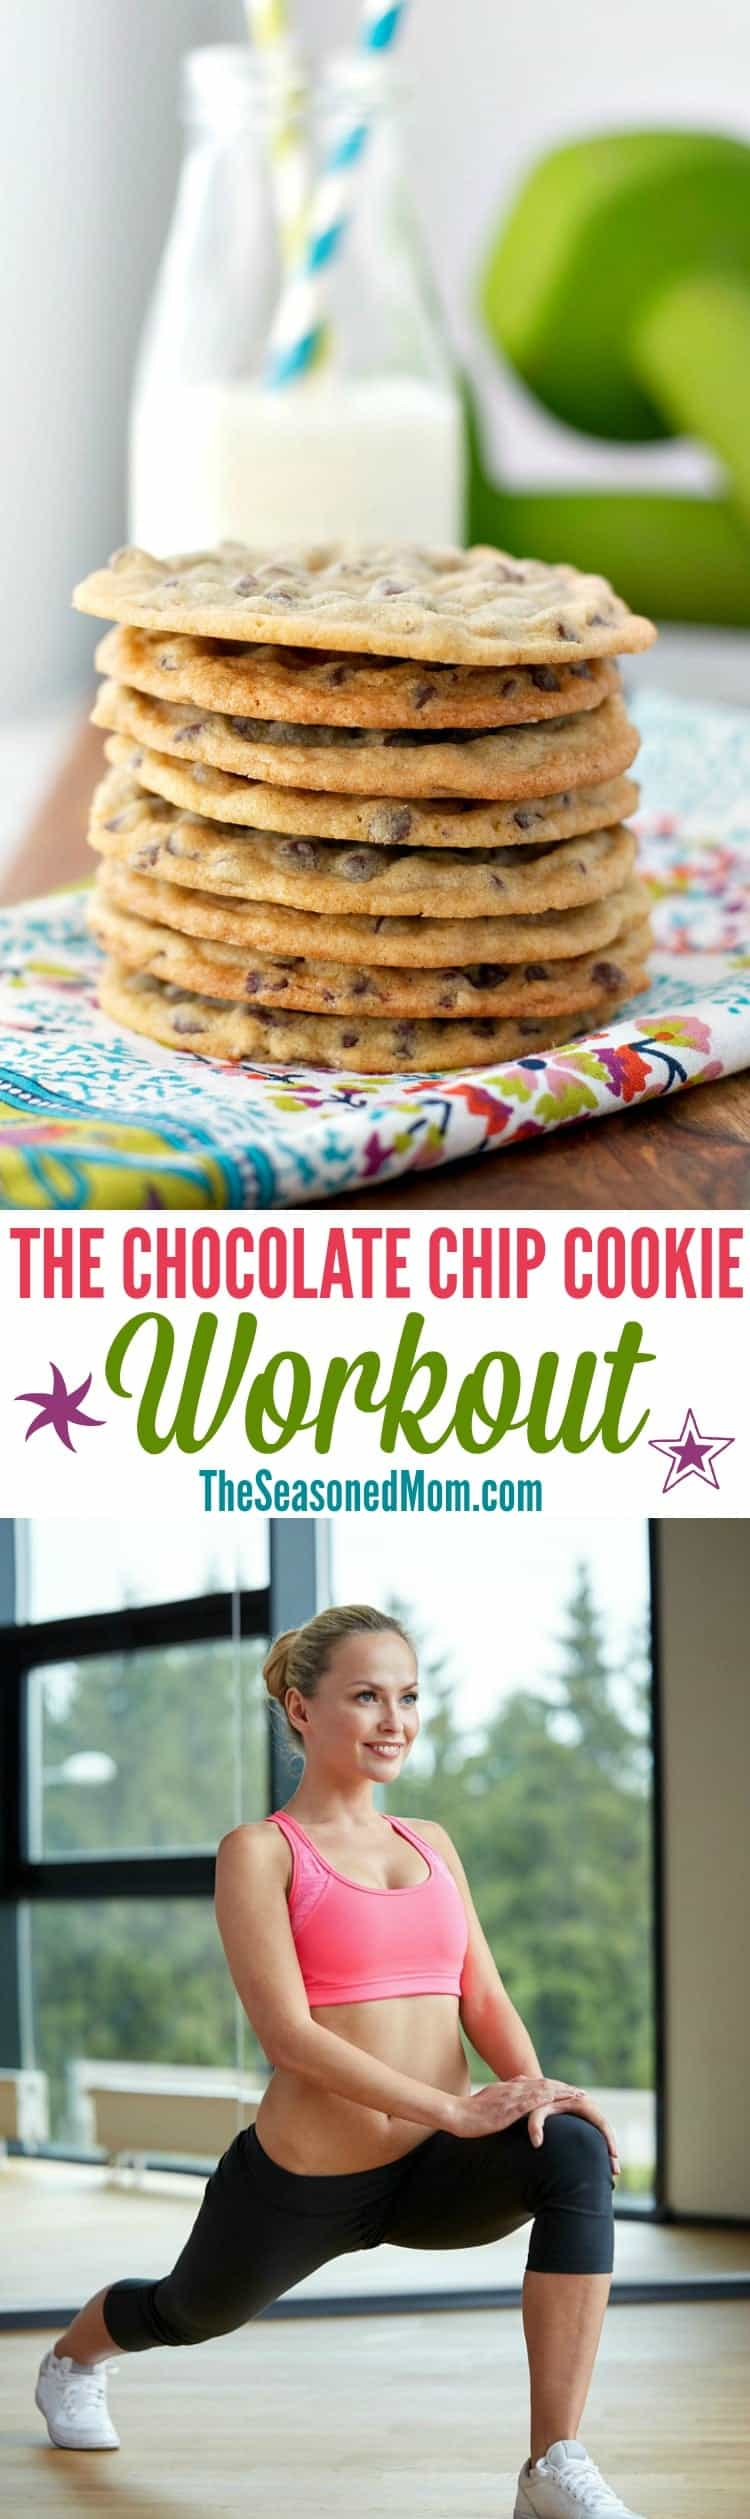 The Chocolate Chip Cookie Workout 2